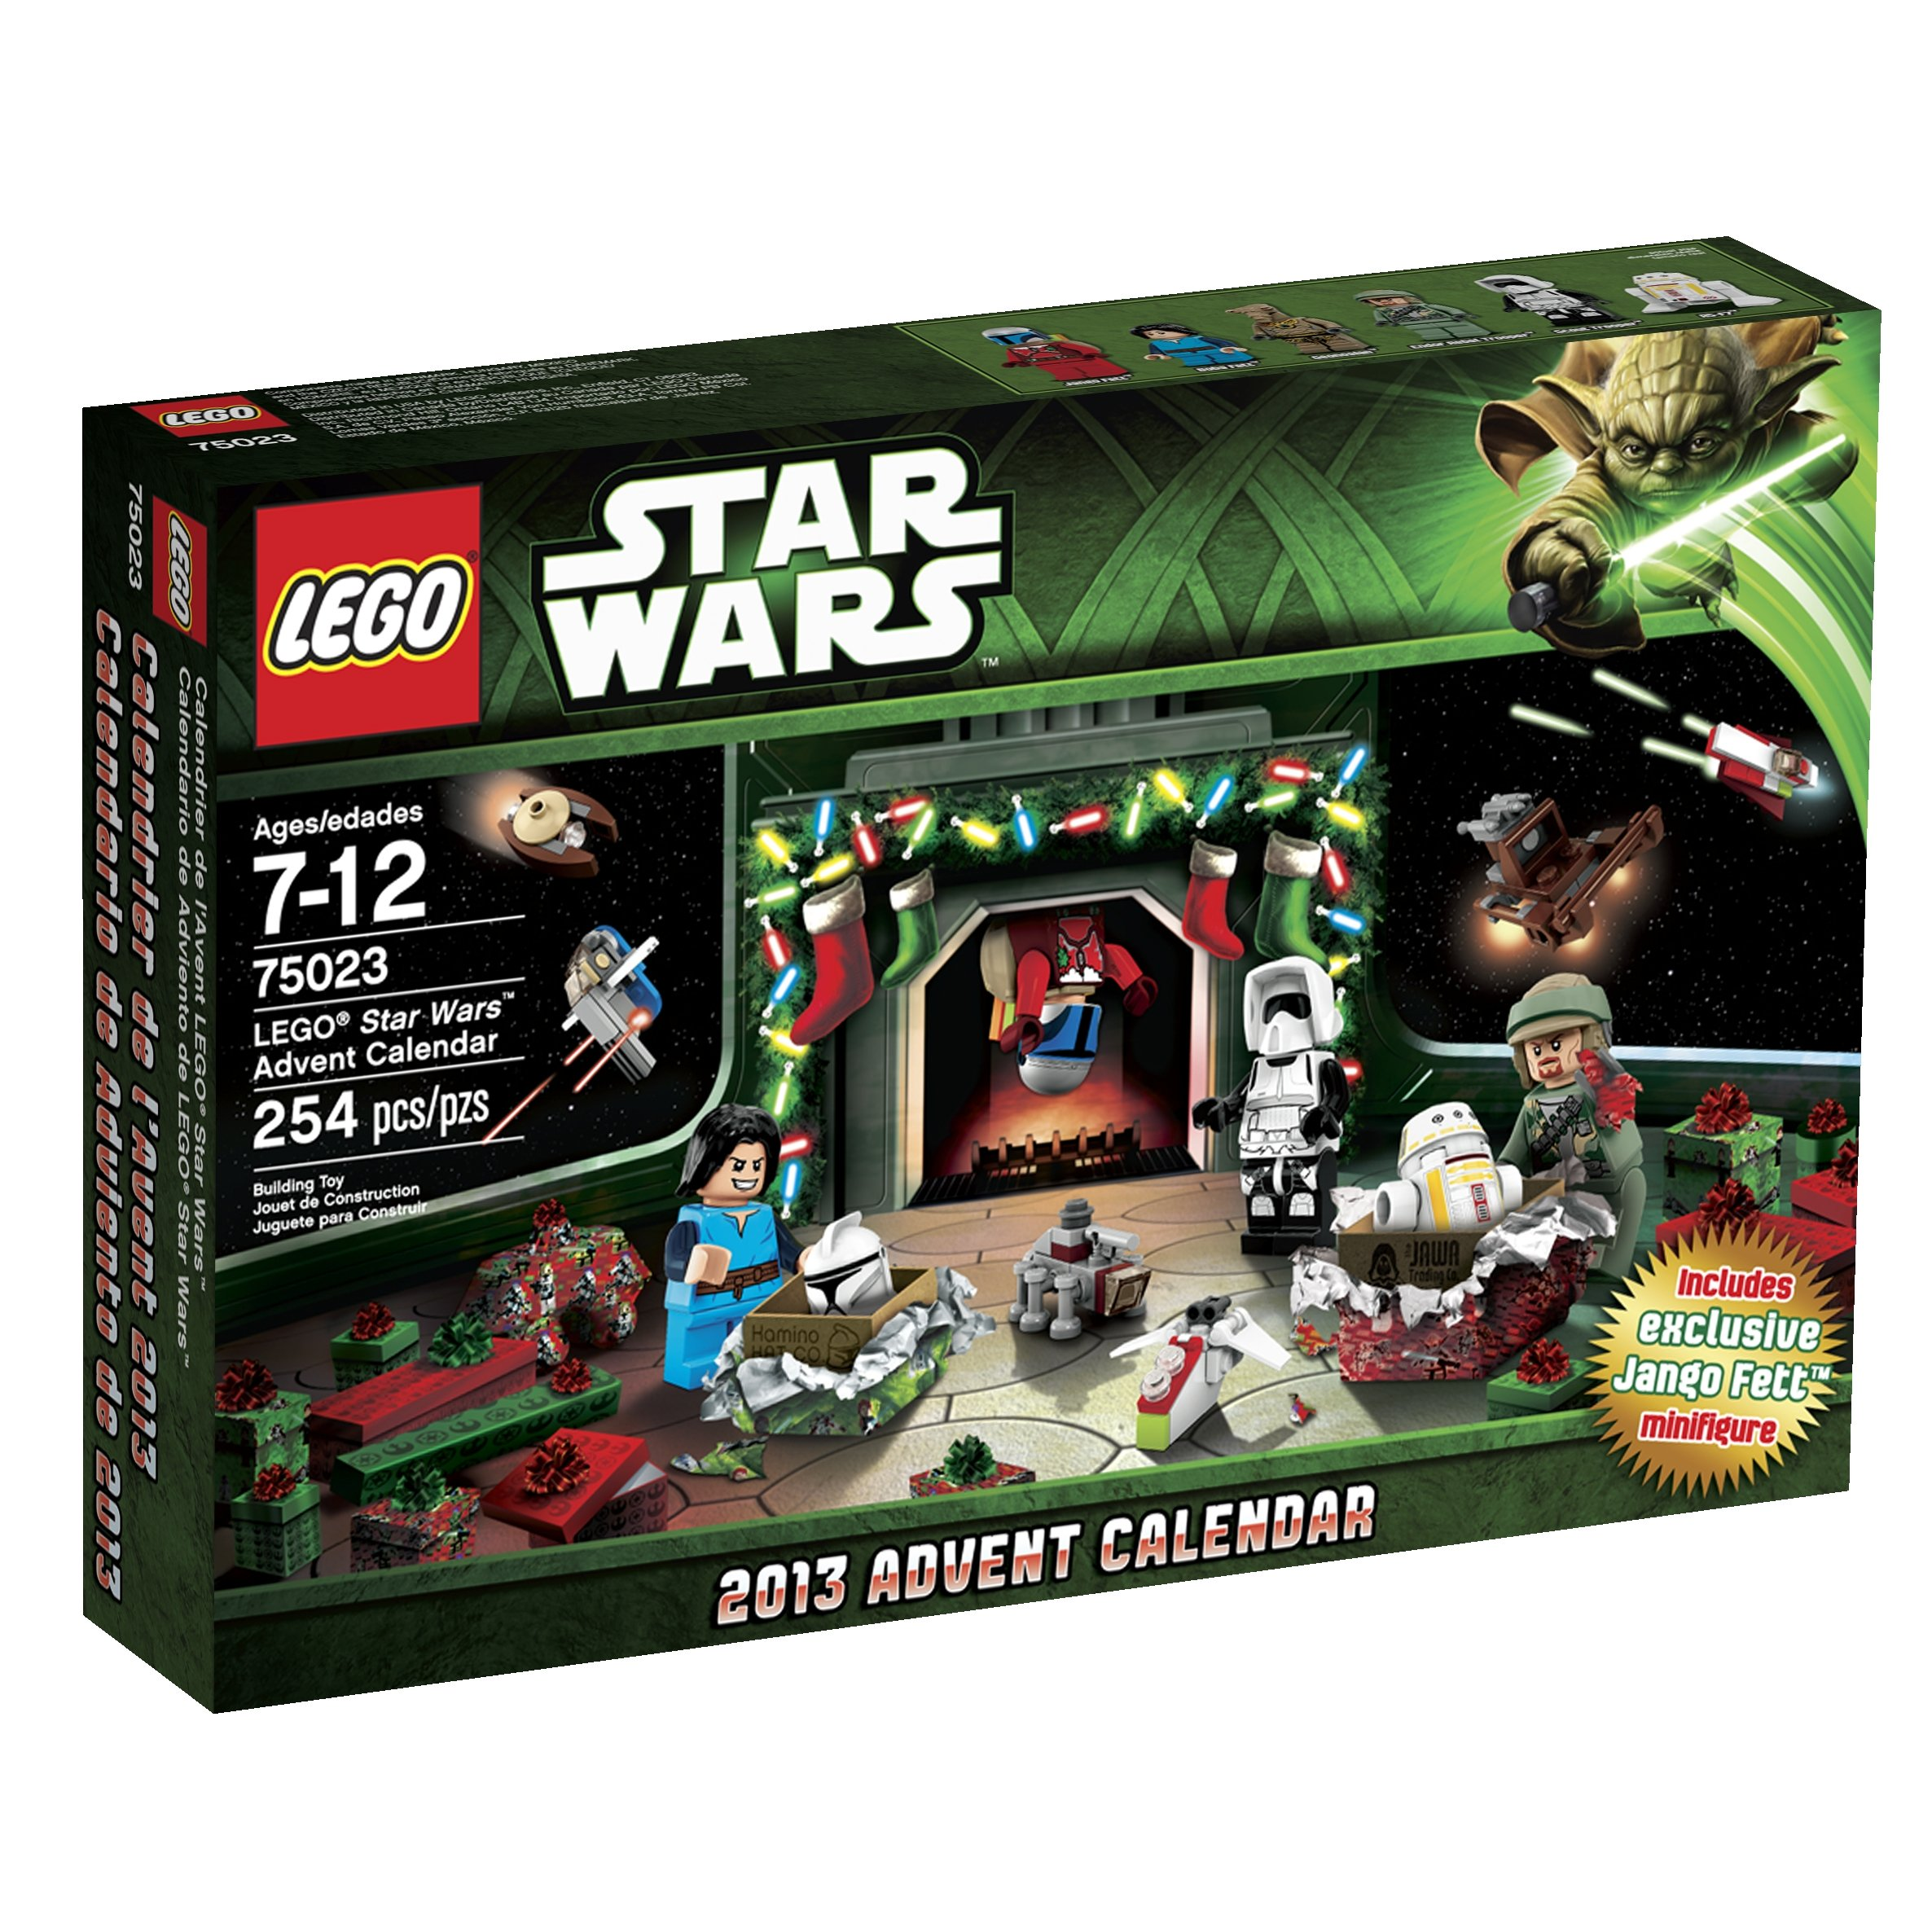 LEGO Star Wars 75023 Advent Calendar (Discontinued by manufacturer) by LEGO